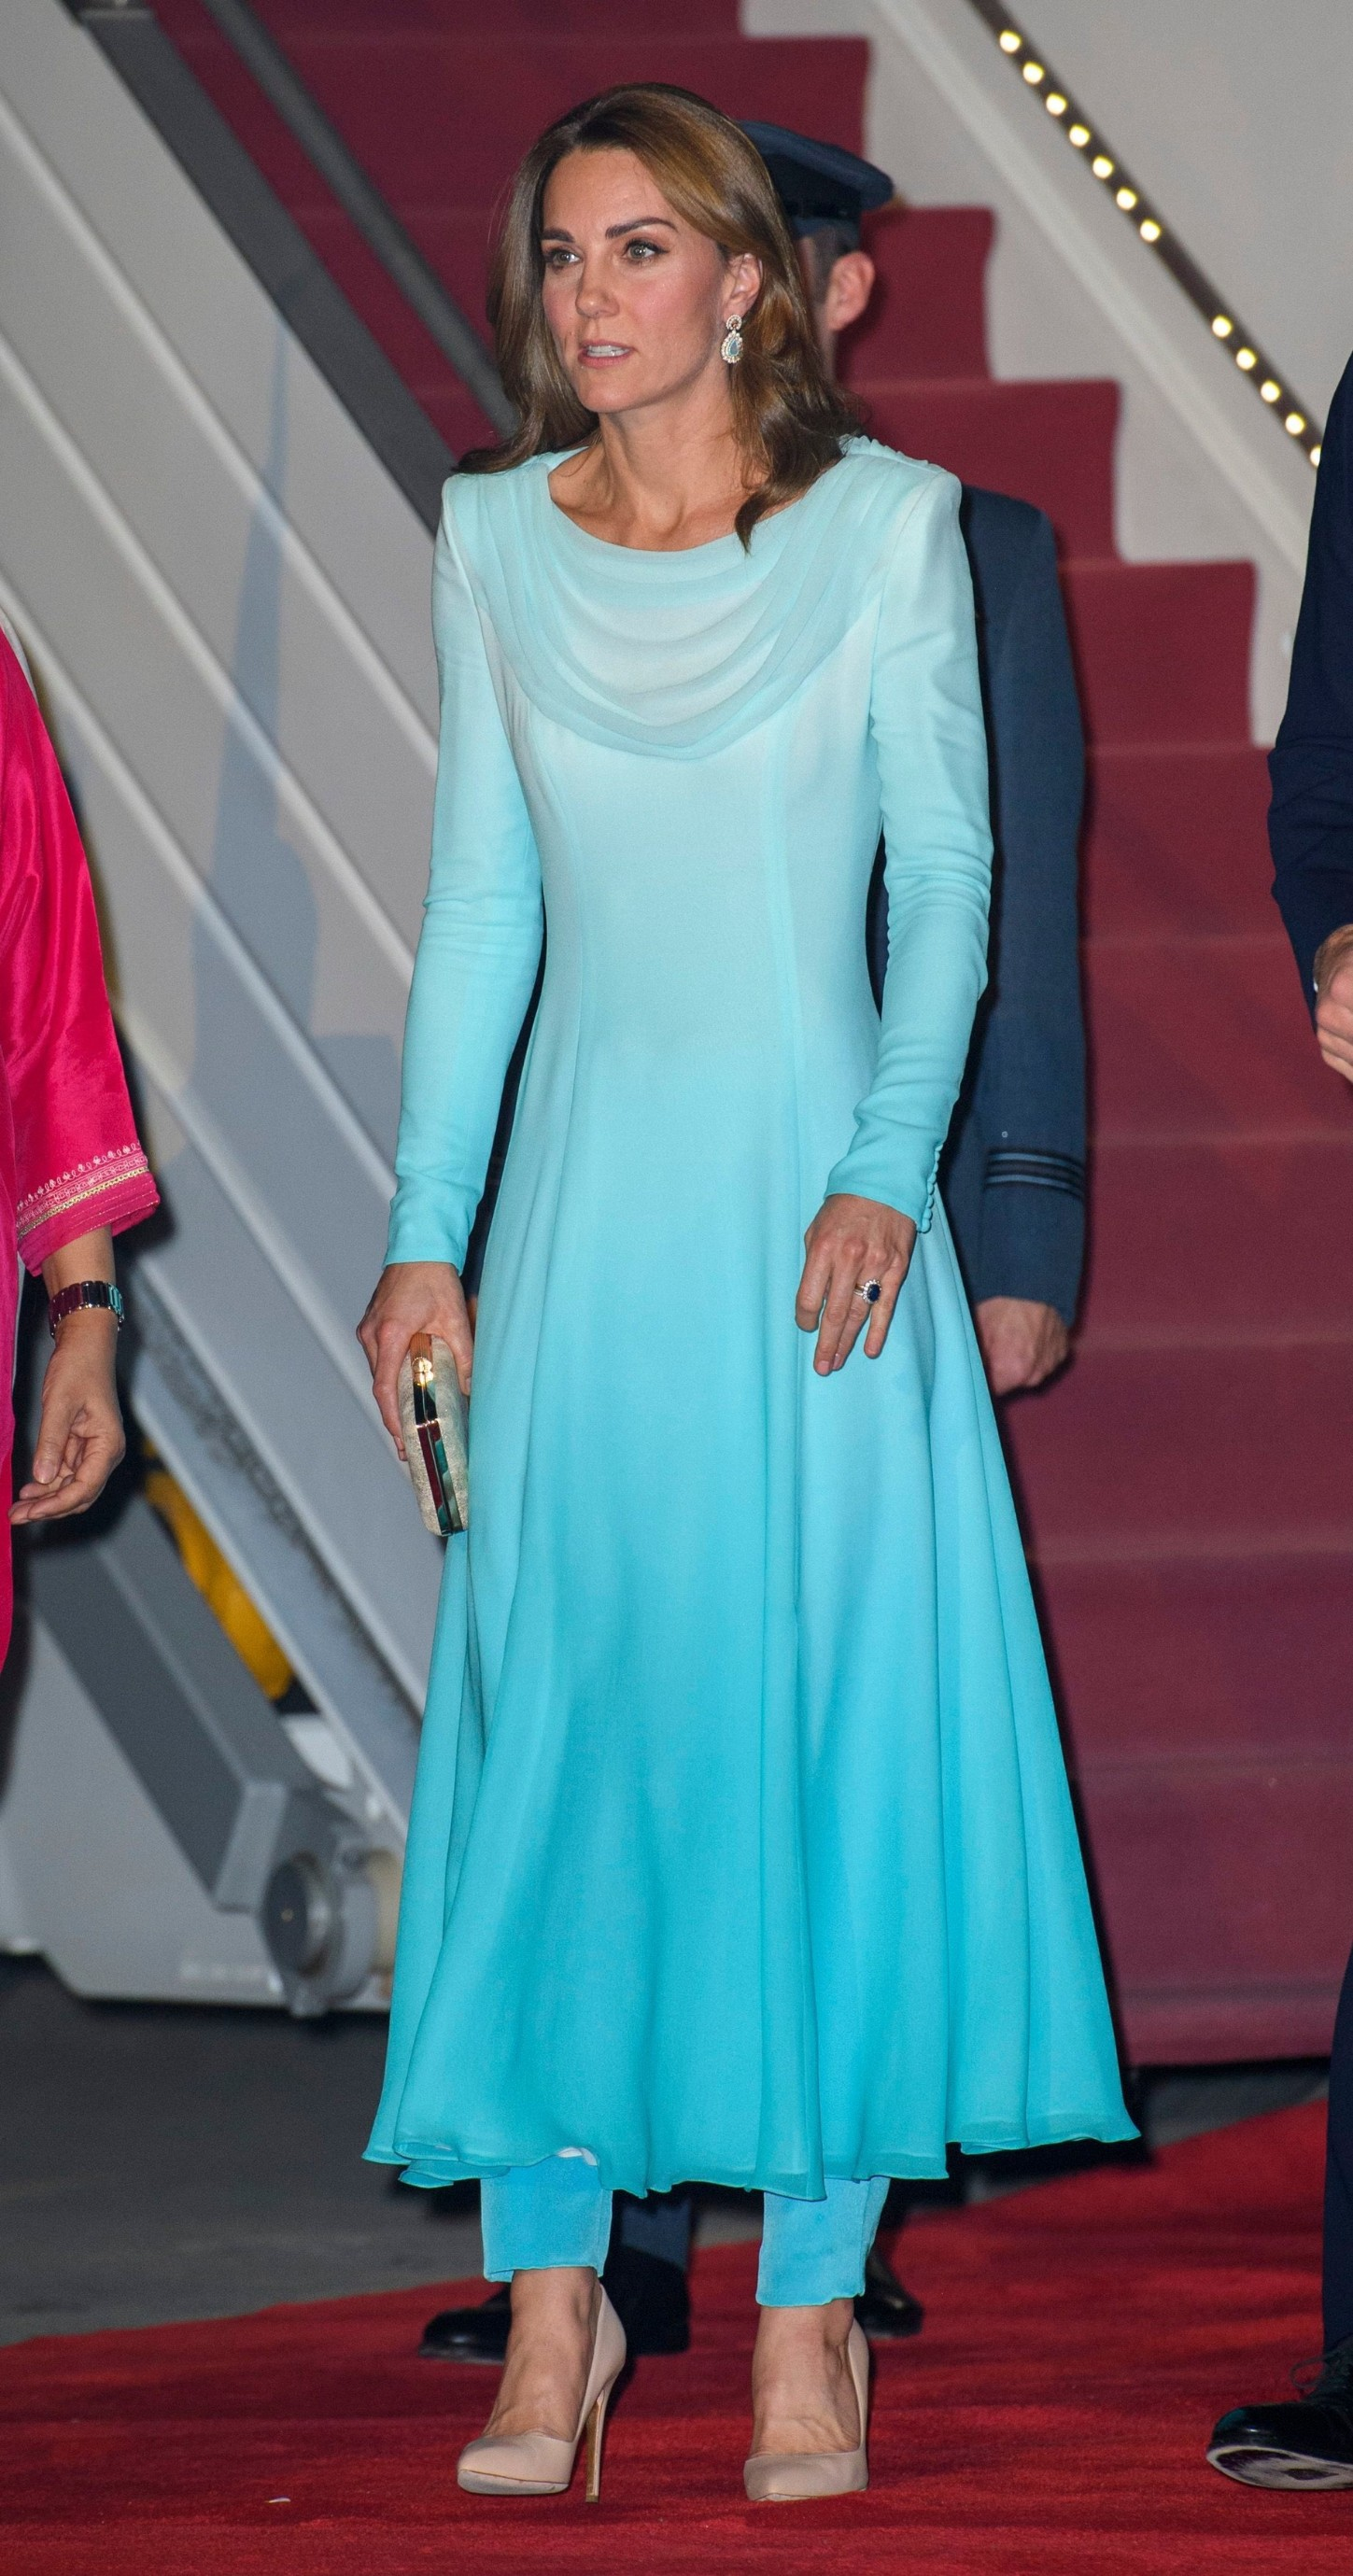 Catherine Duchess of Cambridge The Duke and Duchess of Cambridge visit Pakistan - 14 Oct 2019, Image: 476699623, License: Rights-managed, Restrictions: , Model Release: no, Credit line: Tim Rooke / Shutterstock Editorial / Profimedia